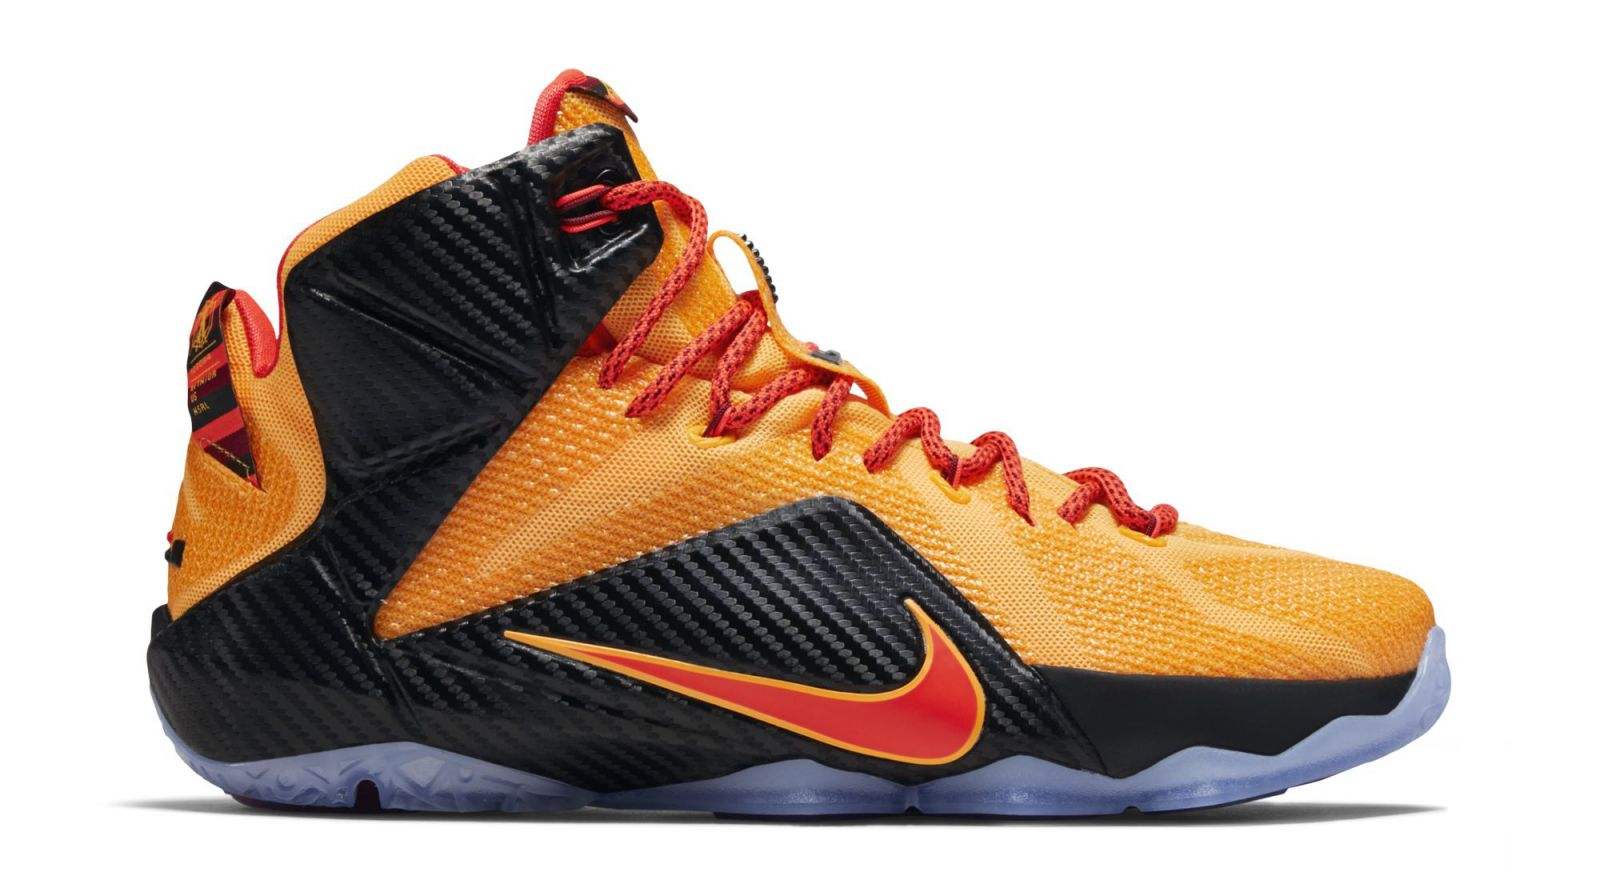 on sale d8bd6 4eb67 Clevelanders Have More to Celebrate Thanks to These LeBrons ...